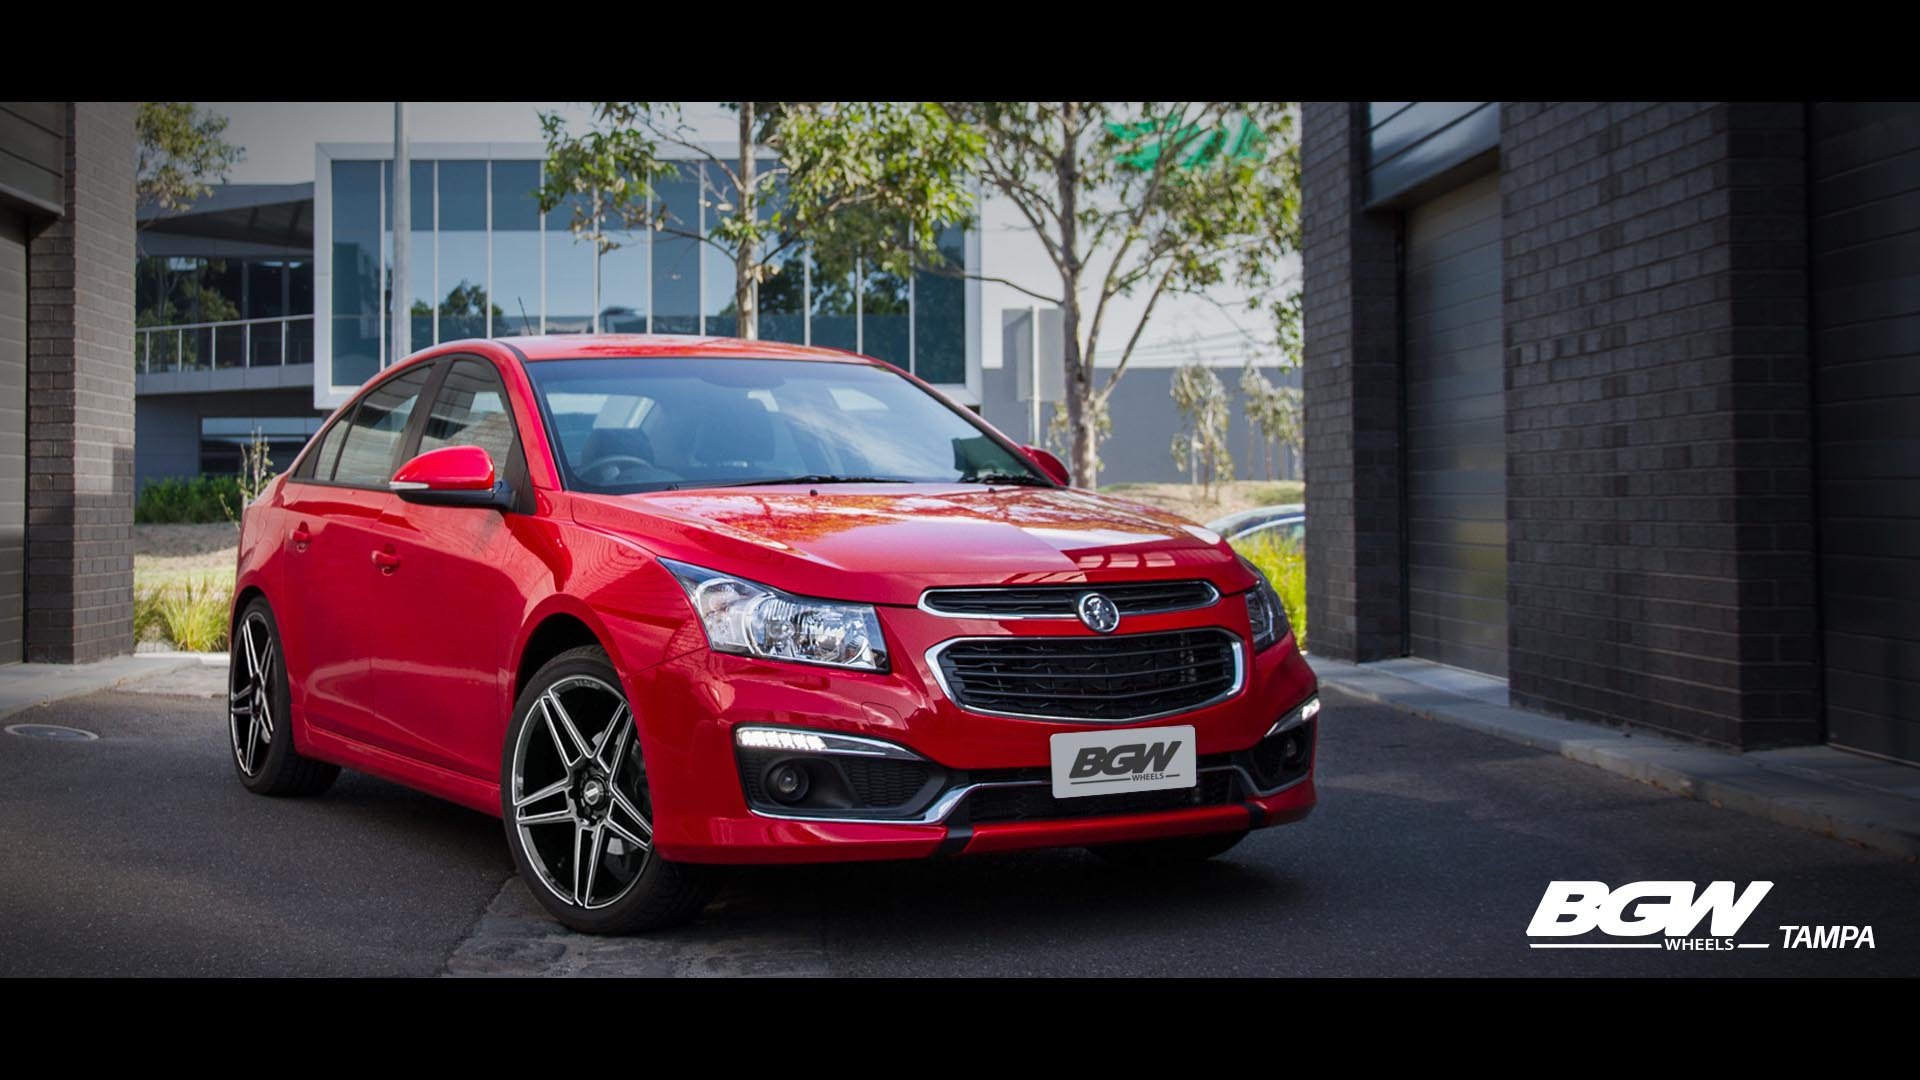 Holden Cruze on BGW Tampa